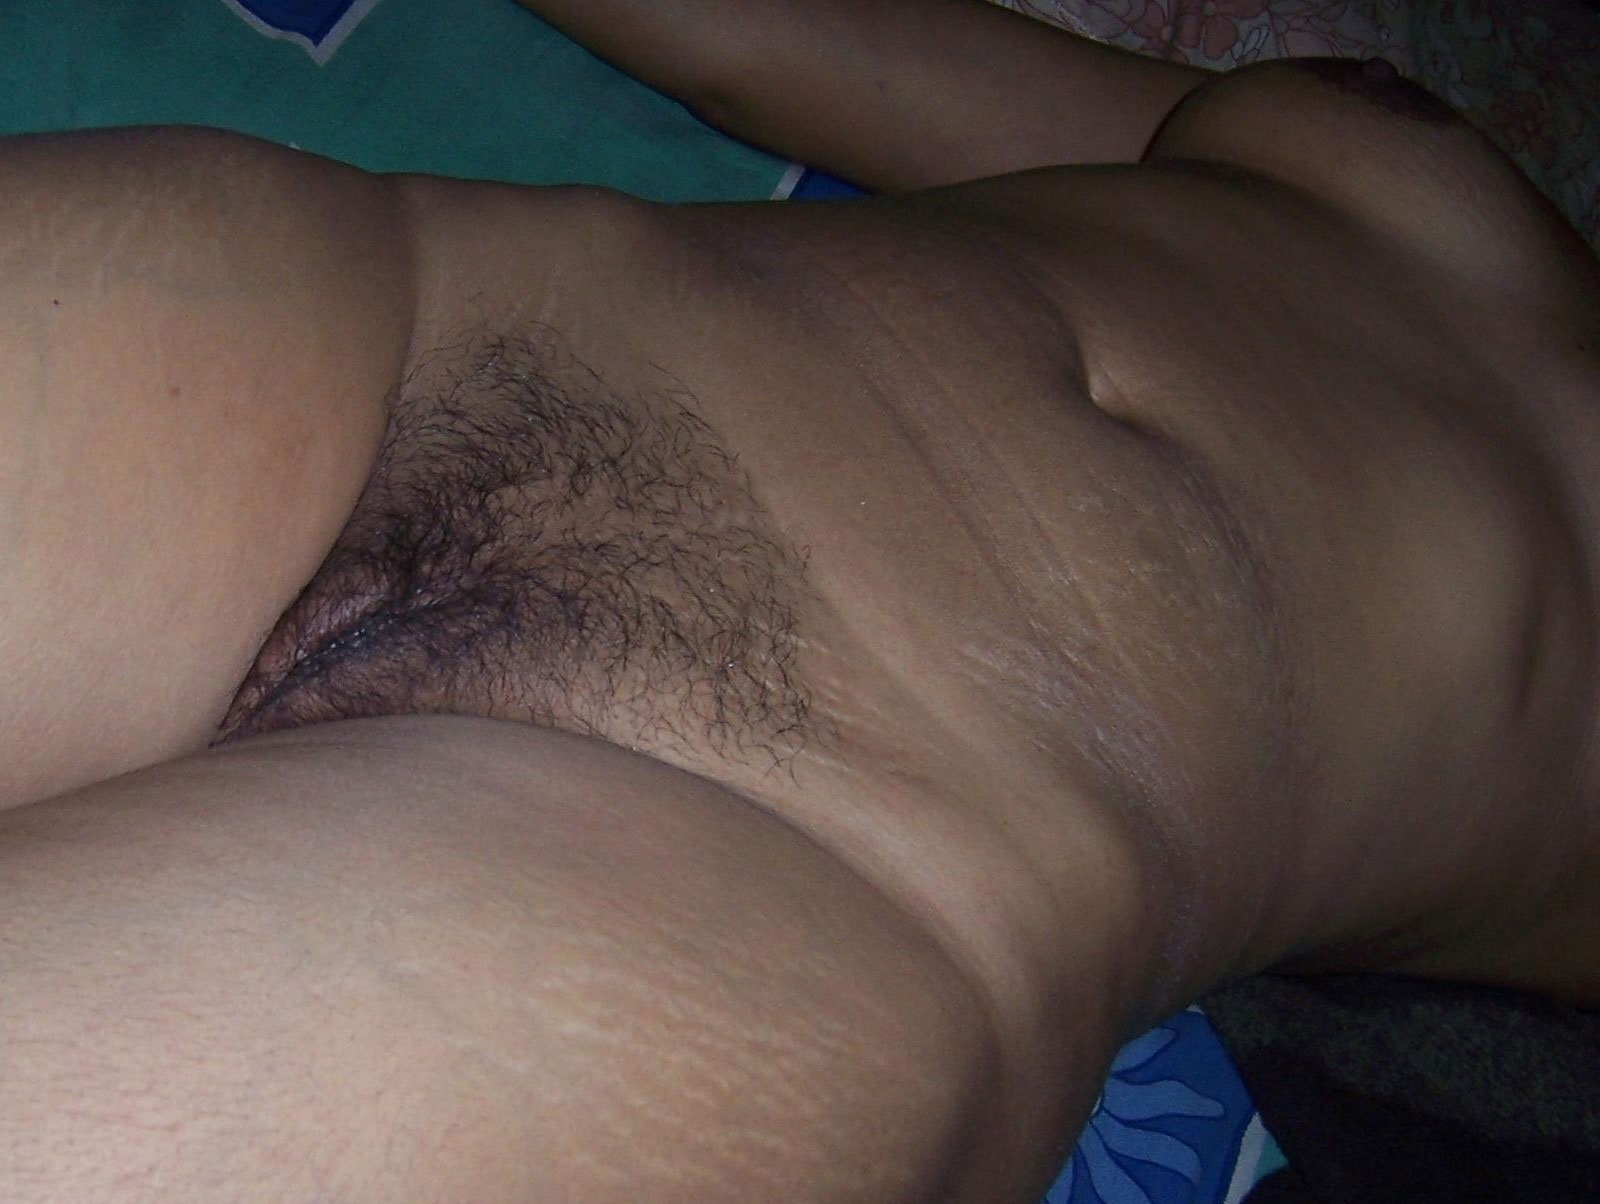 Nude Hairy Indian Man Image | Hot Girl HD Wallpaper